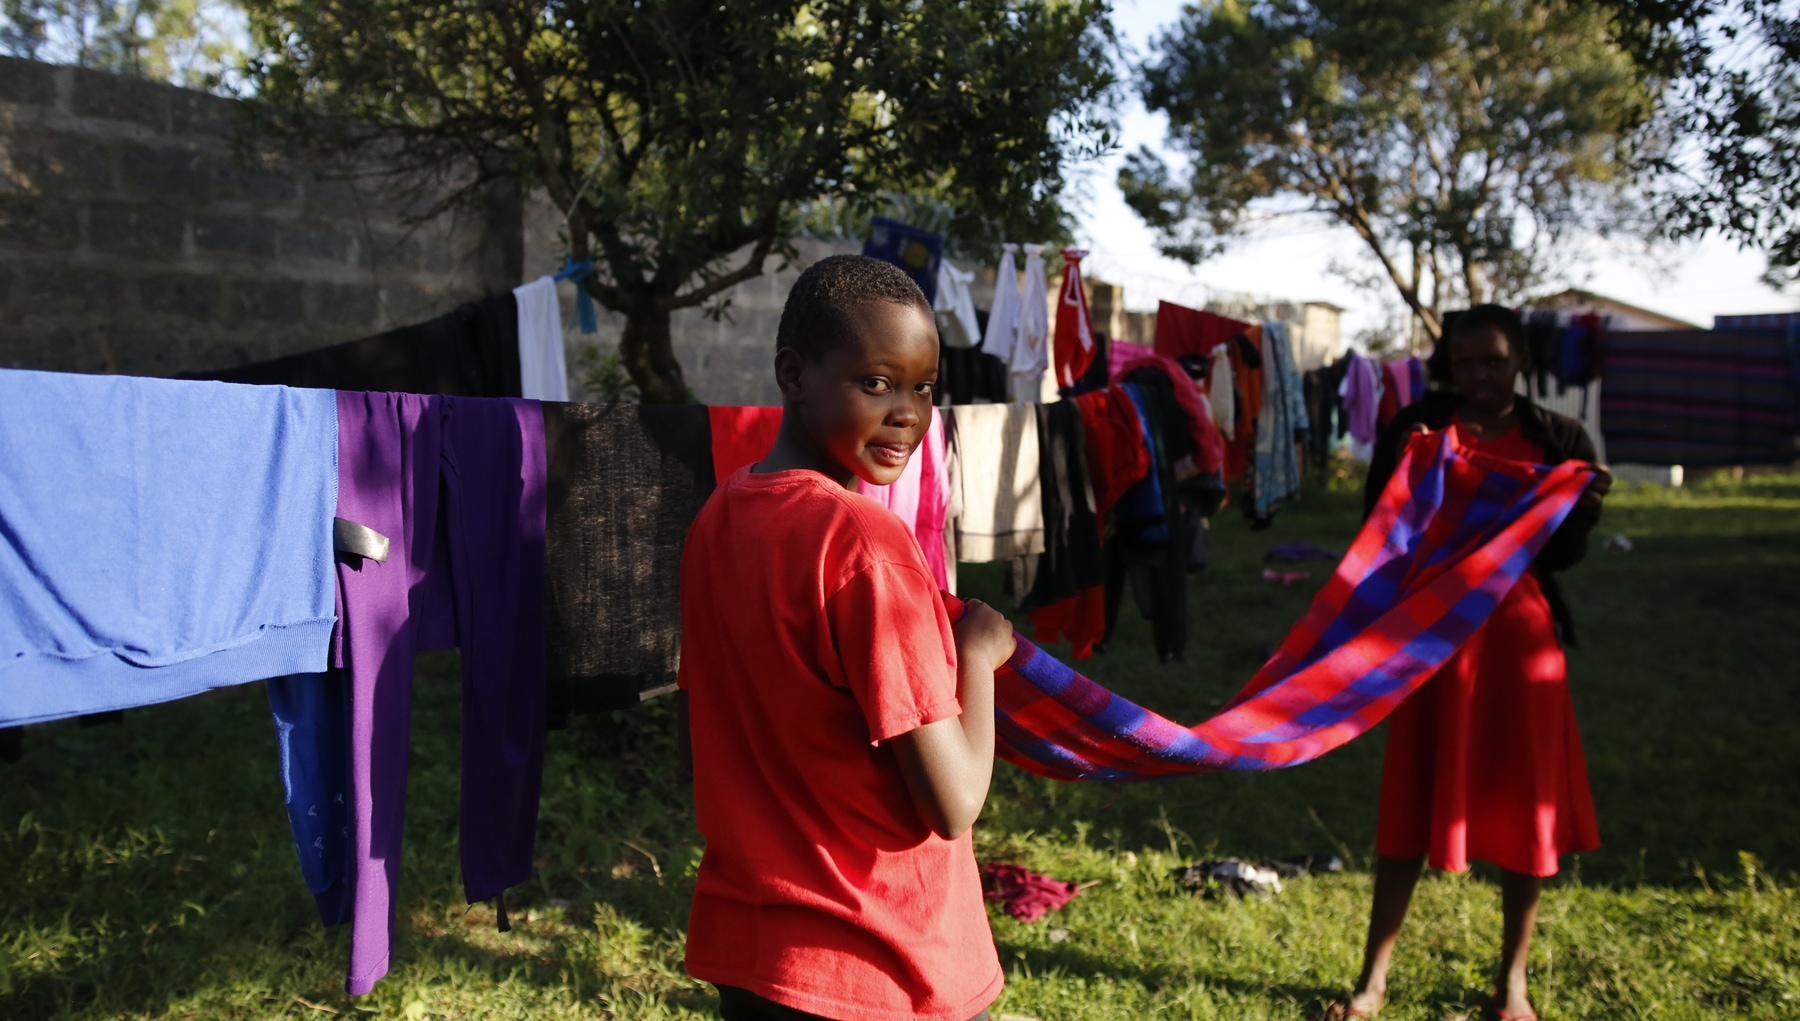 Hanging-up-a-blanket-to-dry